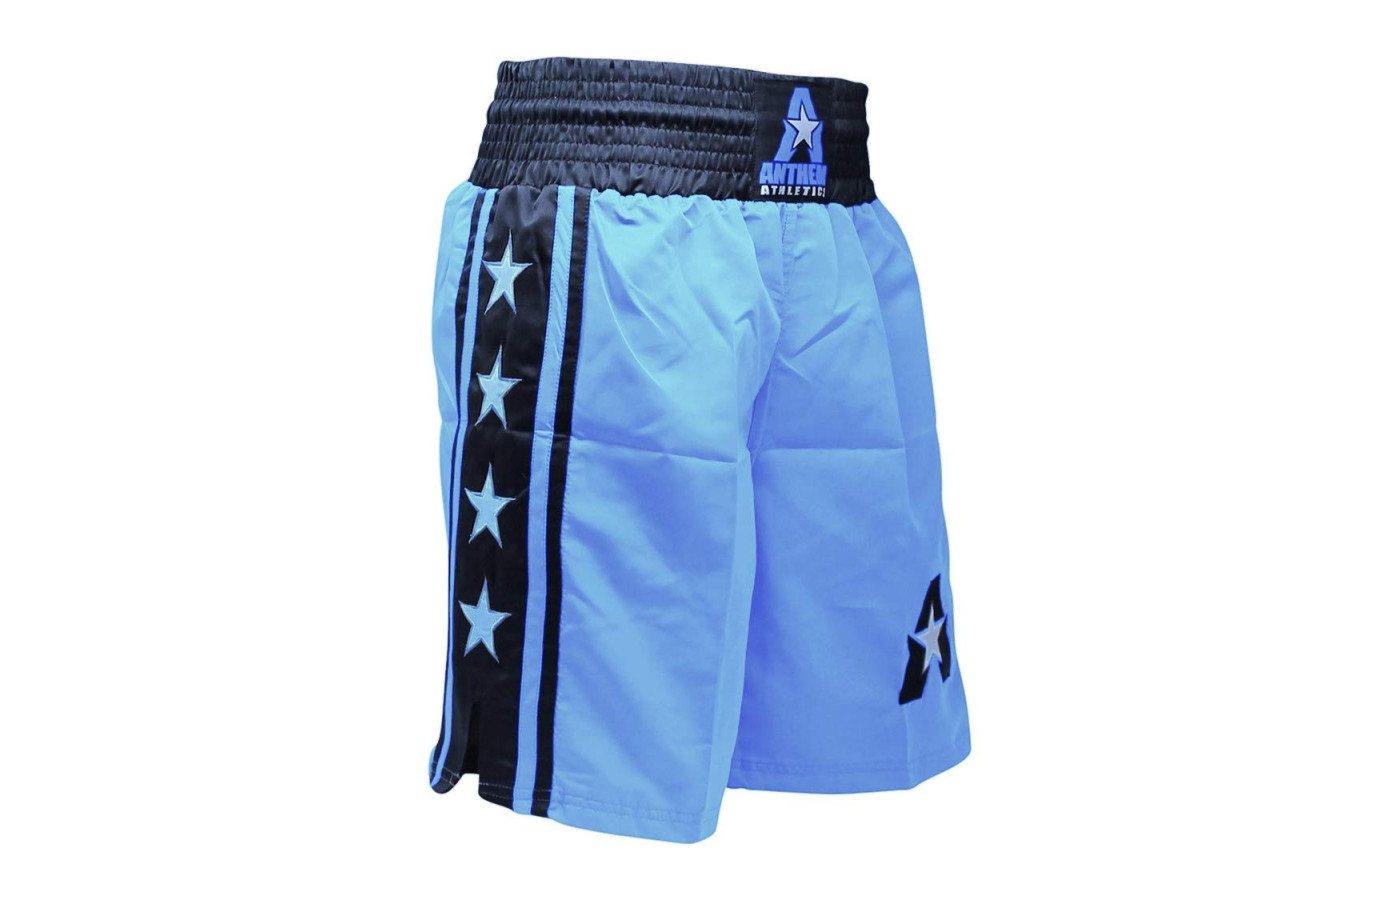 Anthem athletics light blue and dark blue